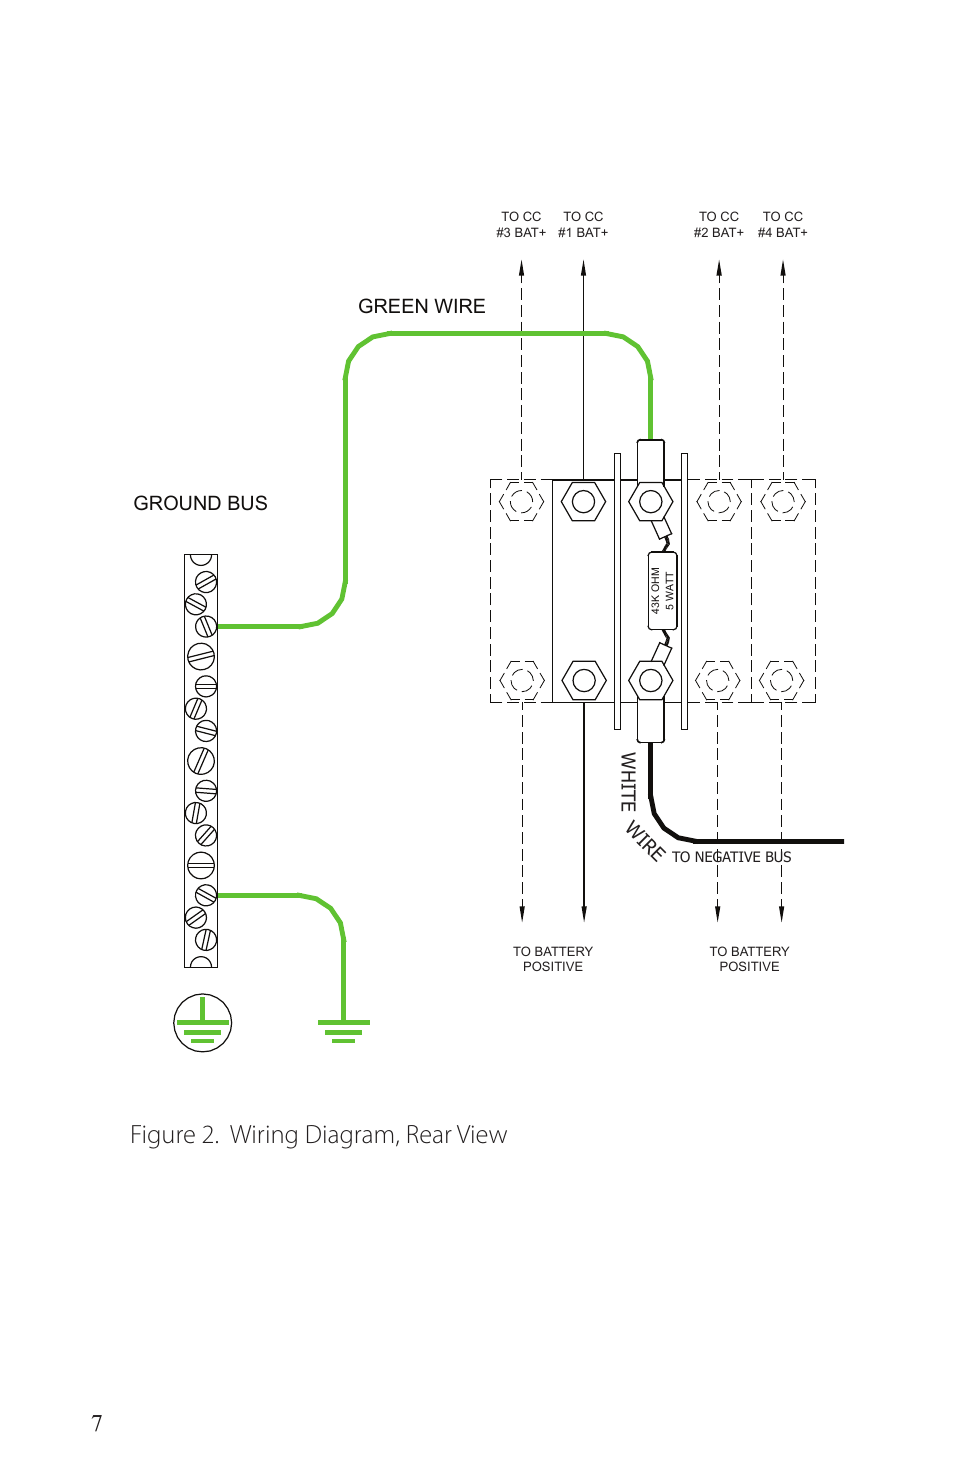 hight resolution of figure 2 wiring diagram rear view green wire white wire dcfigure 2 wiring diagram